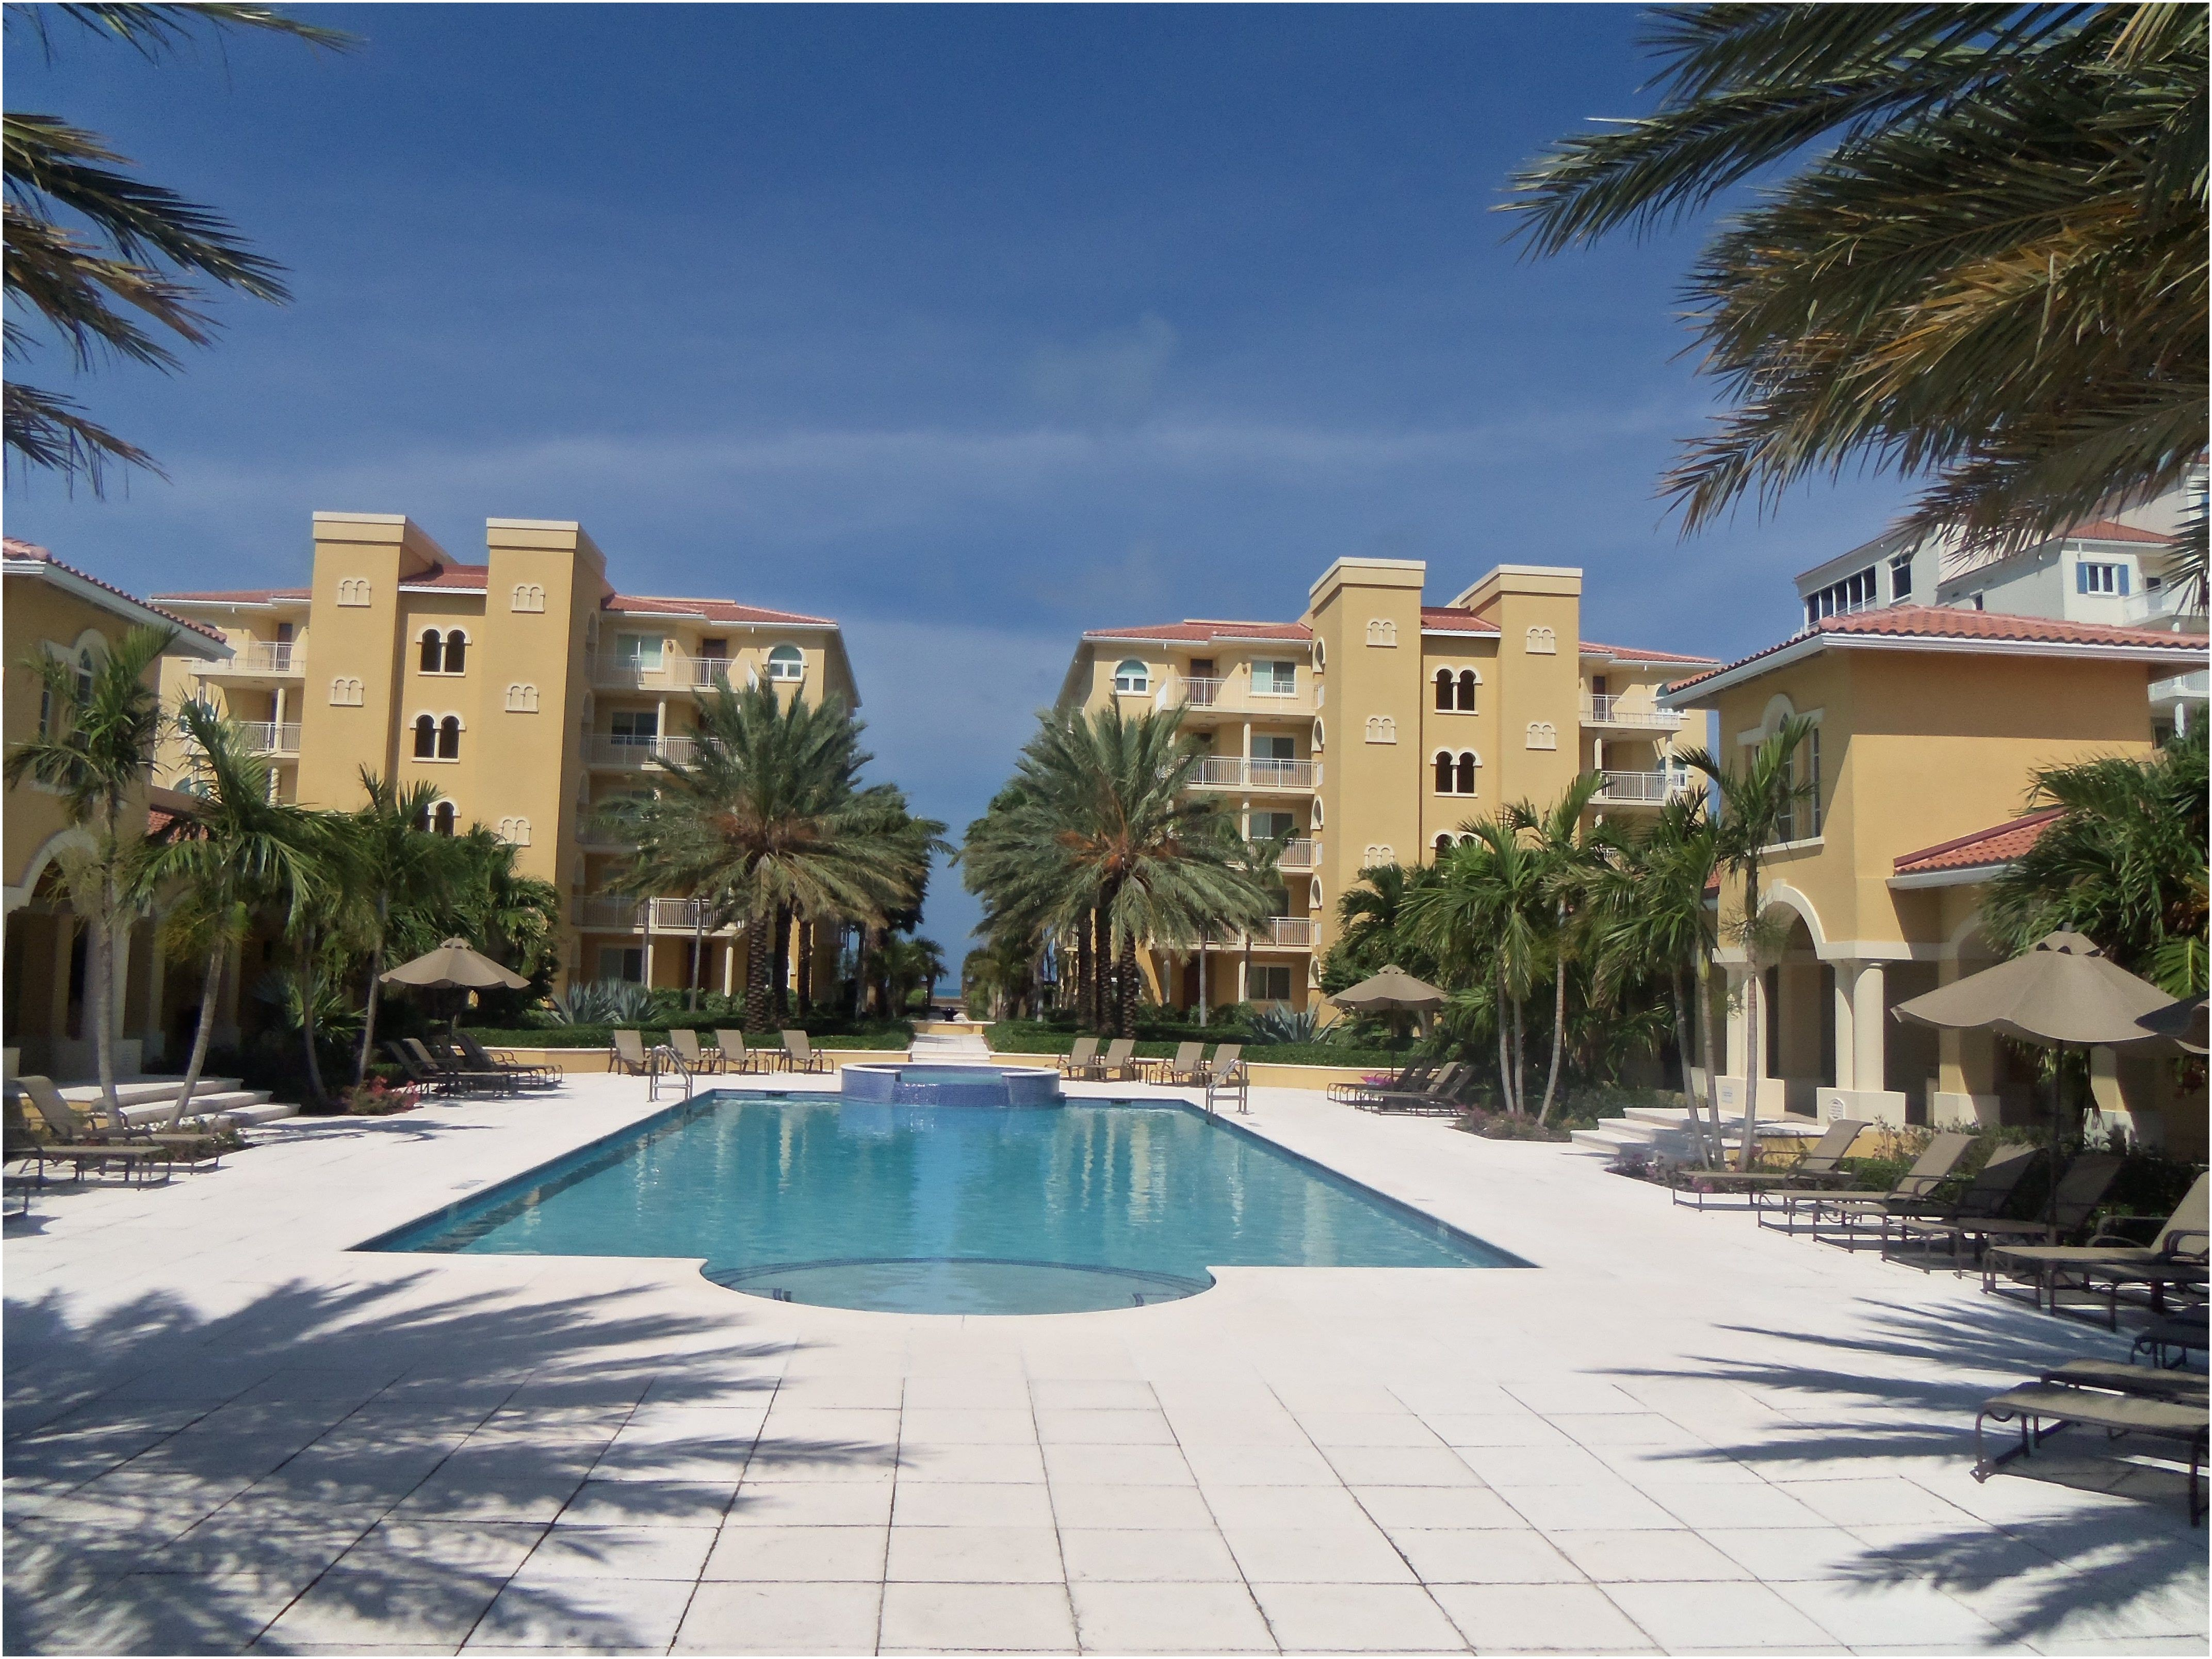 Hotels In Italy at Beach Awesome the Tuscany Resort In Turks and Caicos